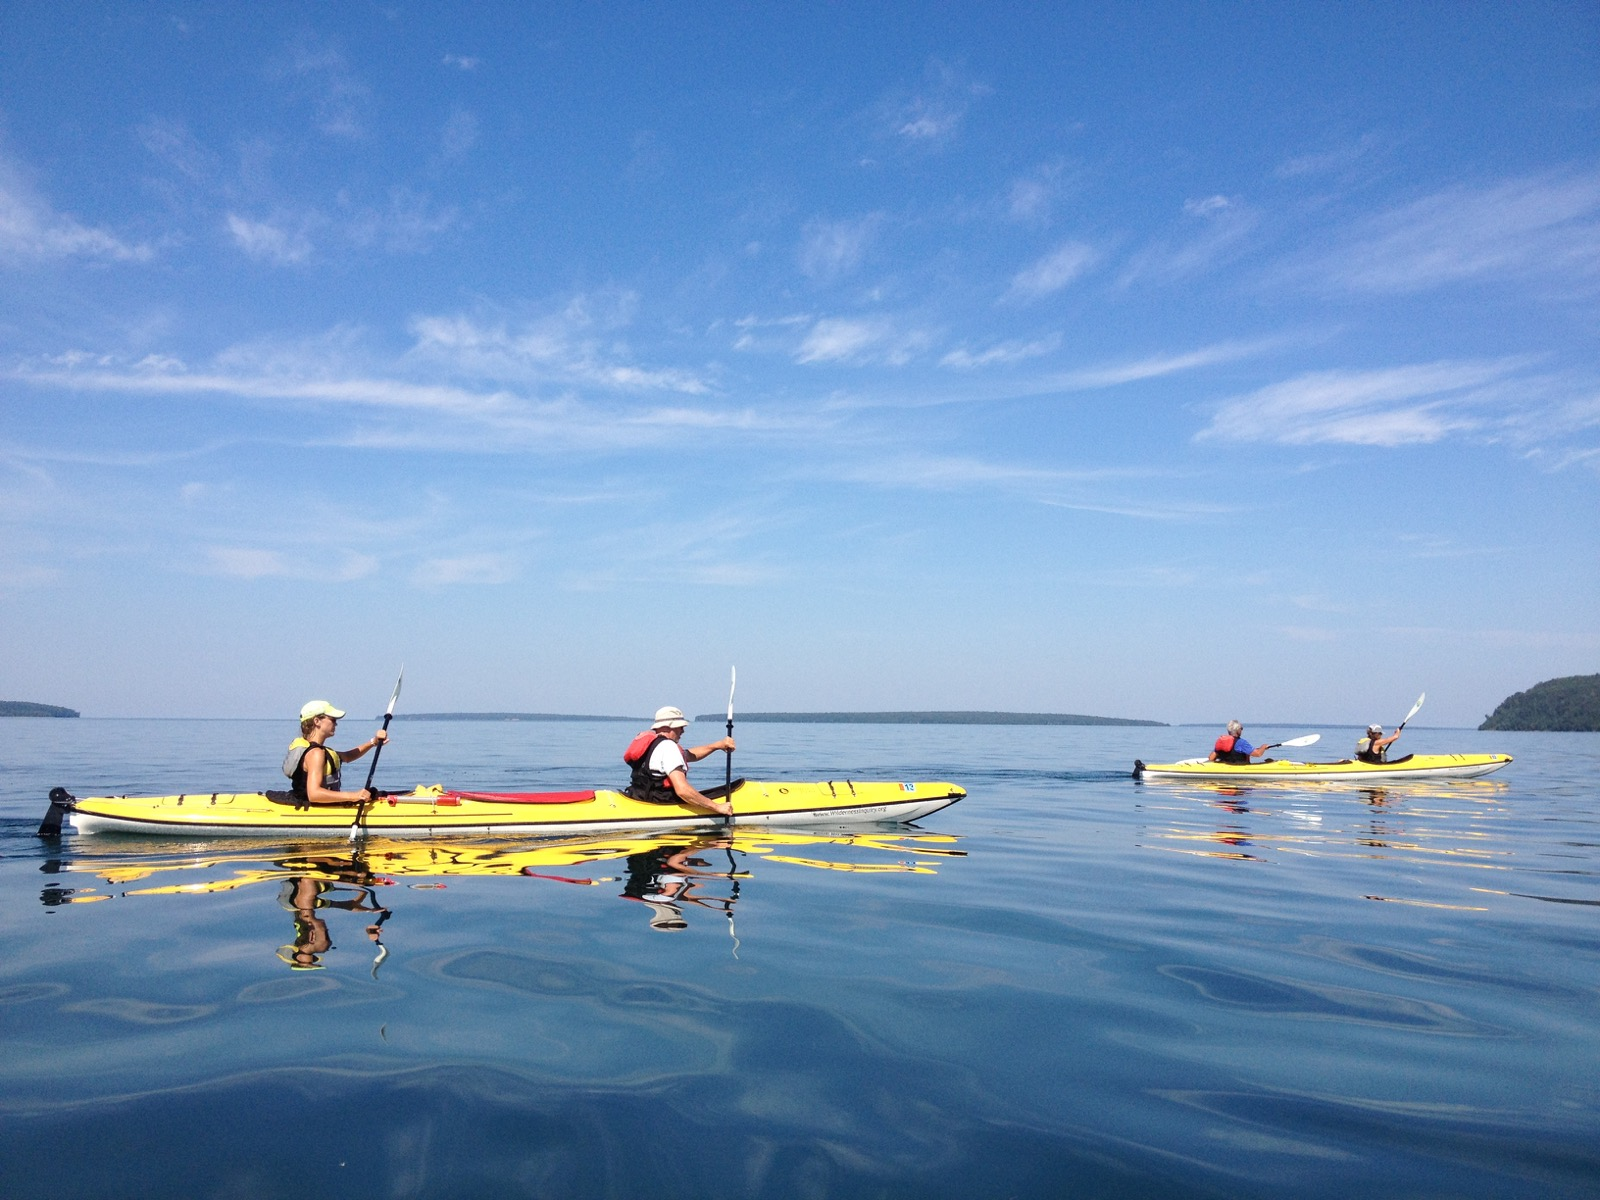 Two yellow kayaks paddle across the glassy surface of Lake Superior on a sunny day.